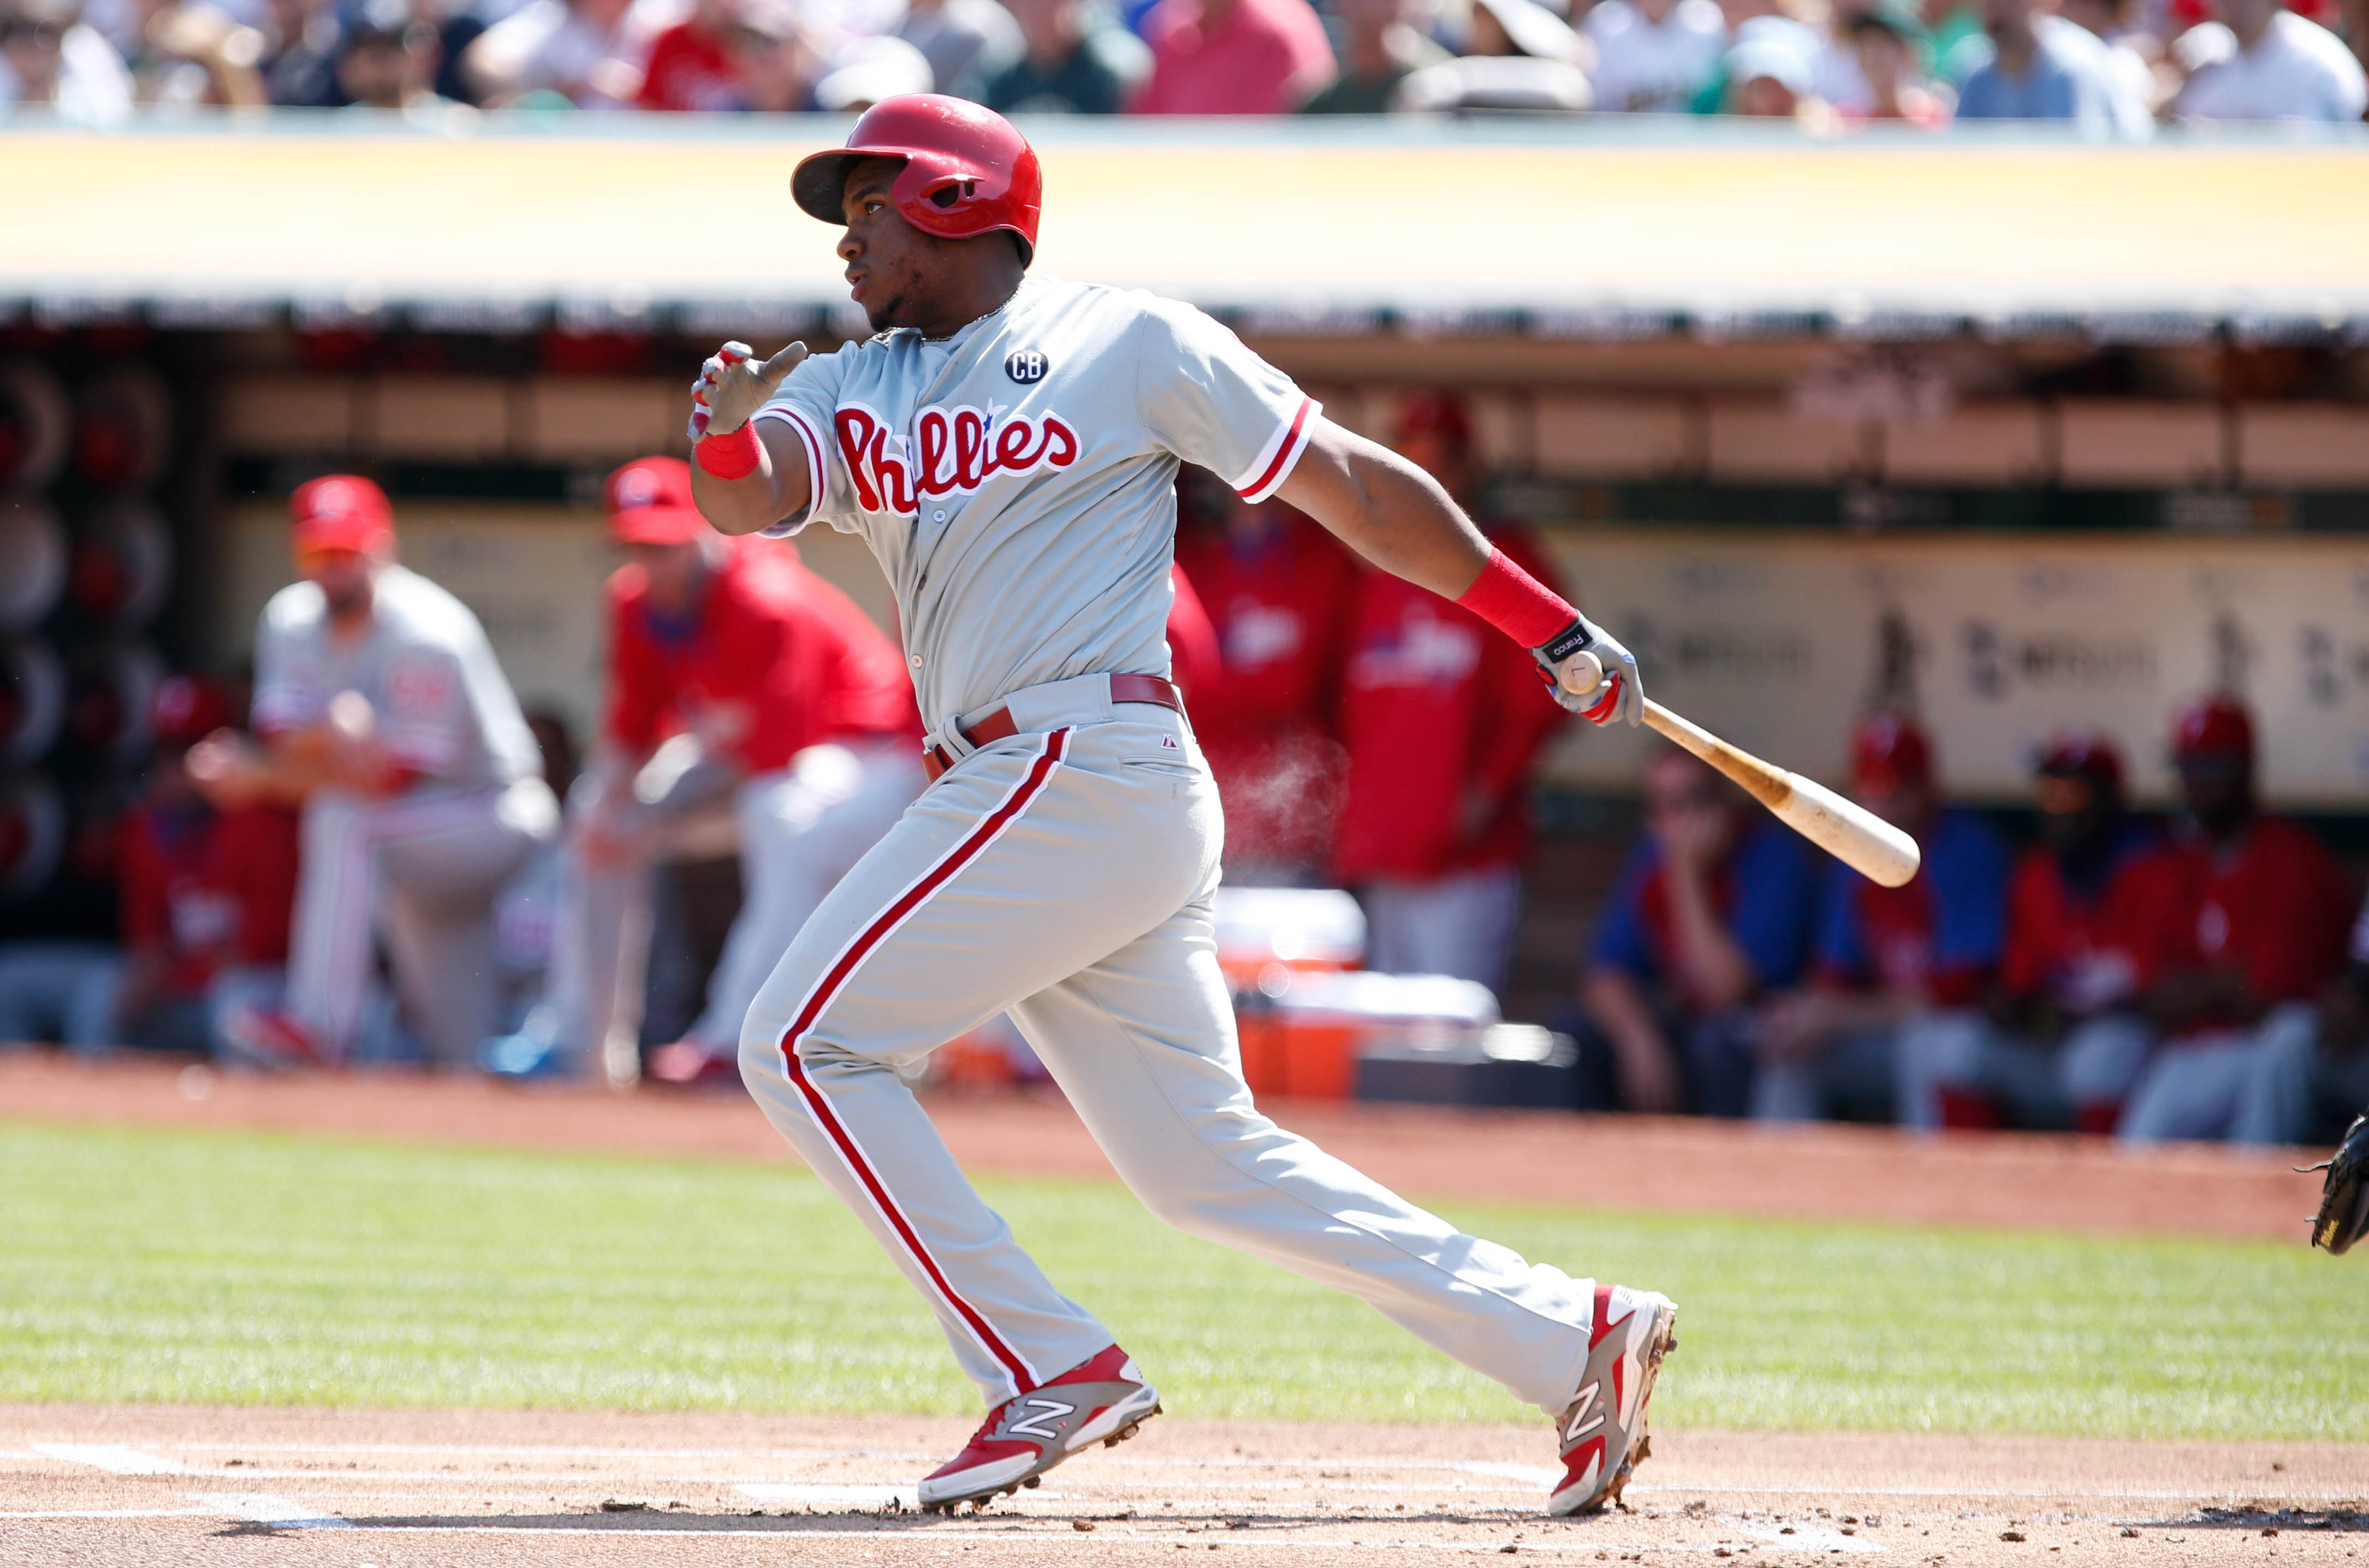 The second best prospect in the Phillies system, 3B Maikel Franco.